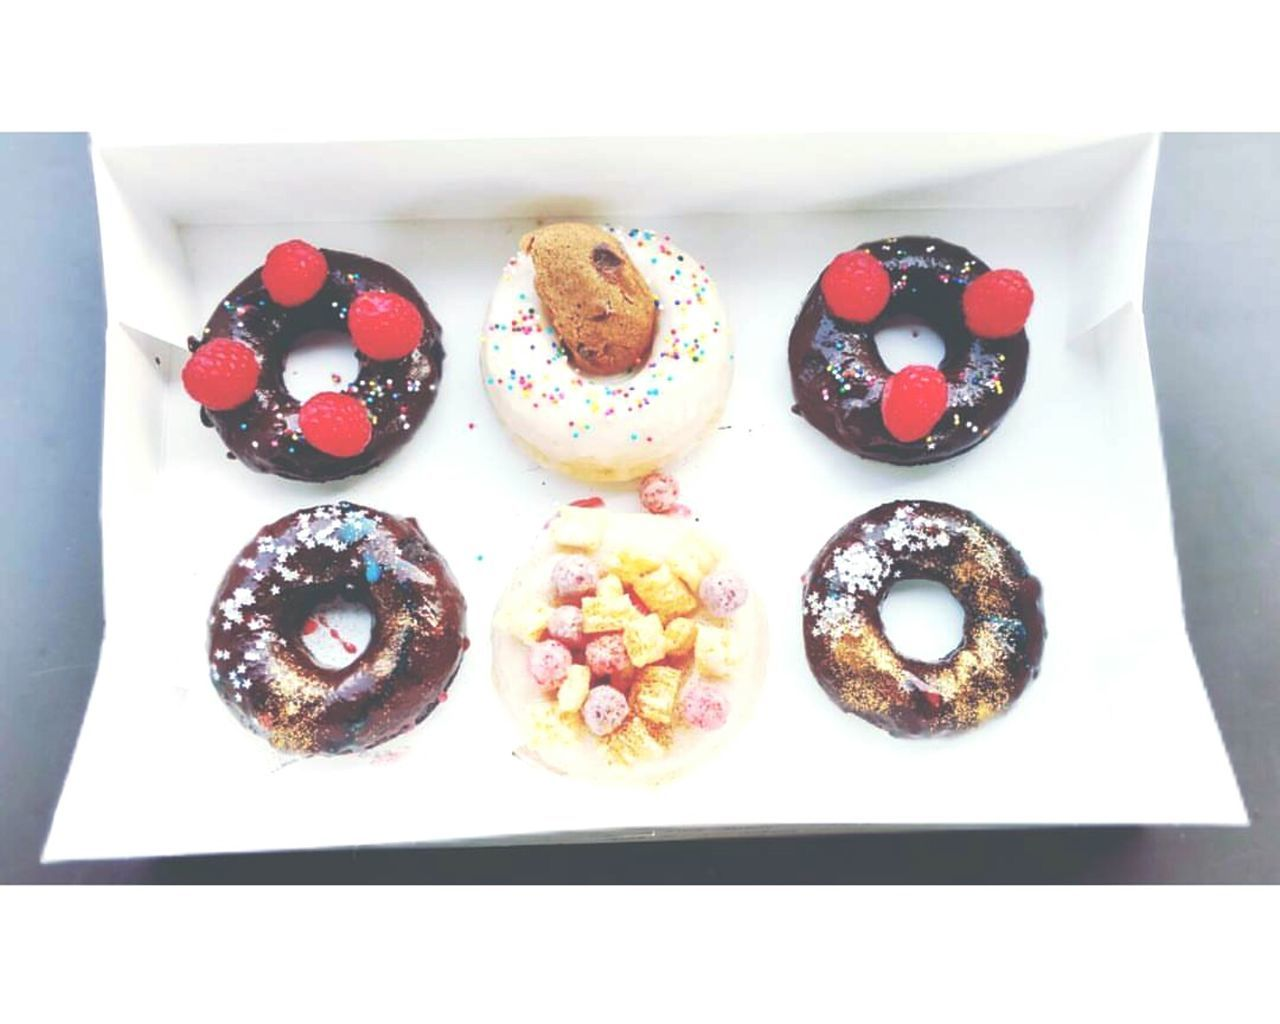 Food And Drink Sweet Food Food No People Day Doughnuts Donuts Breakfast Brunch Half Dozen Raspberry